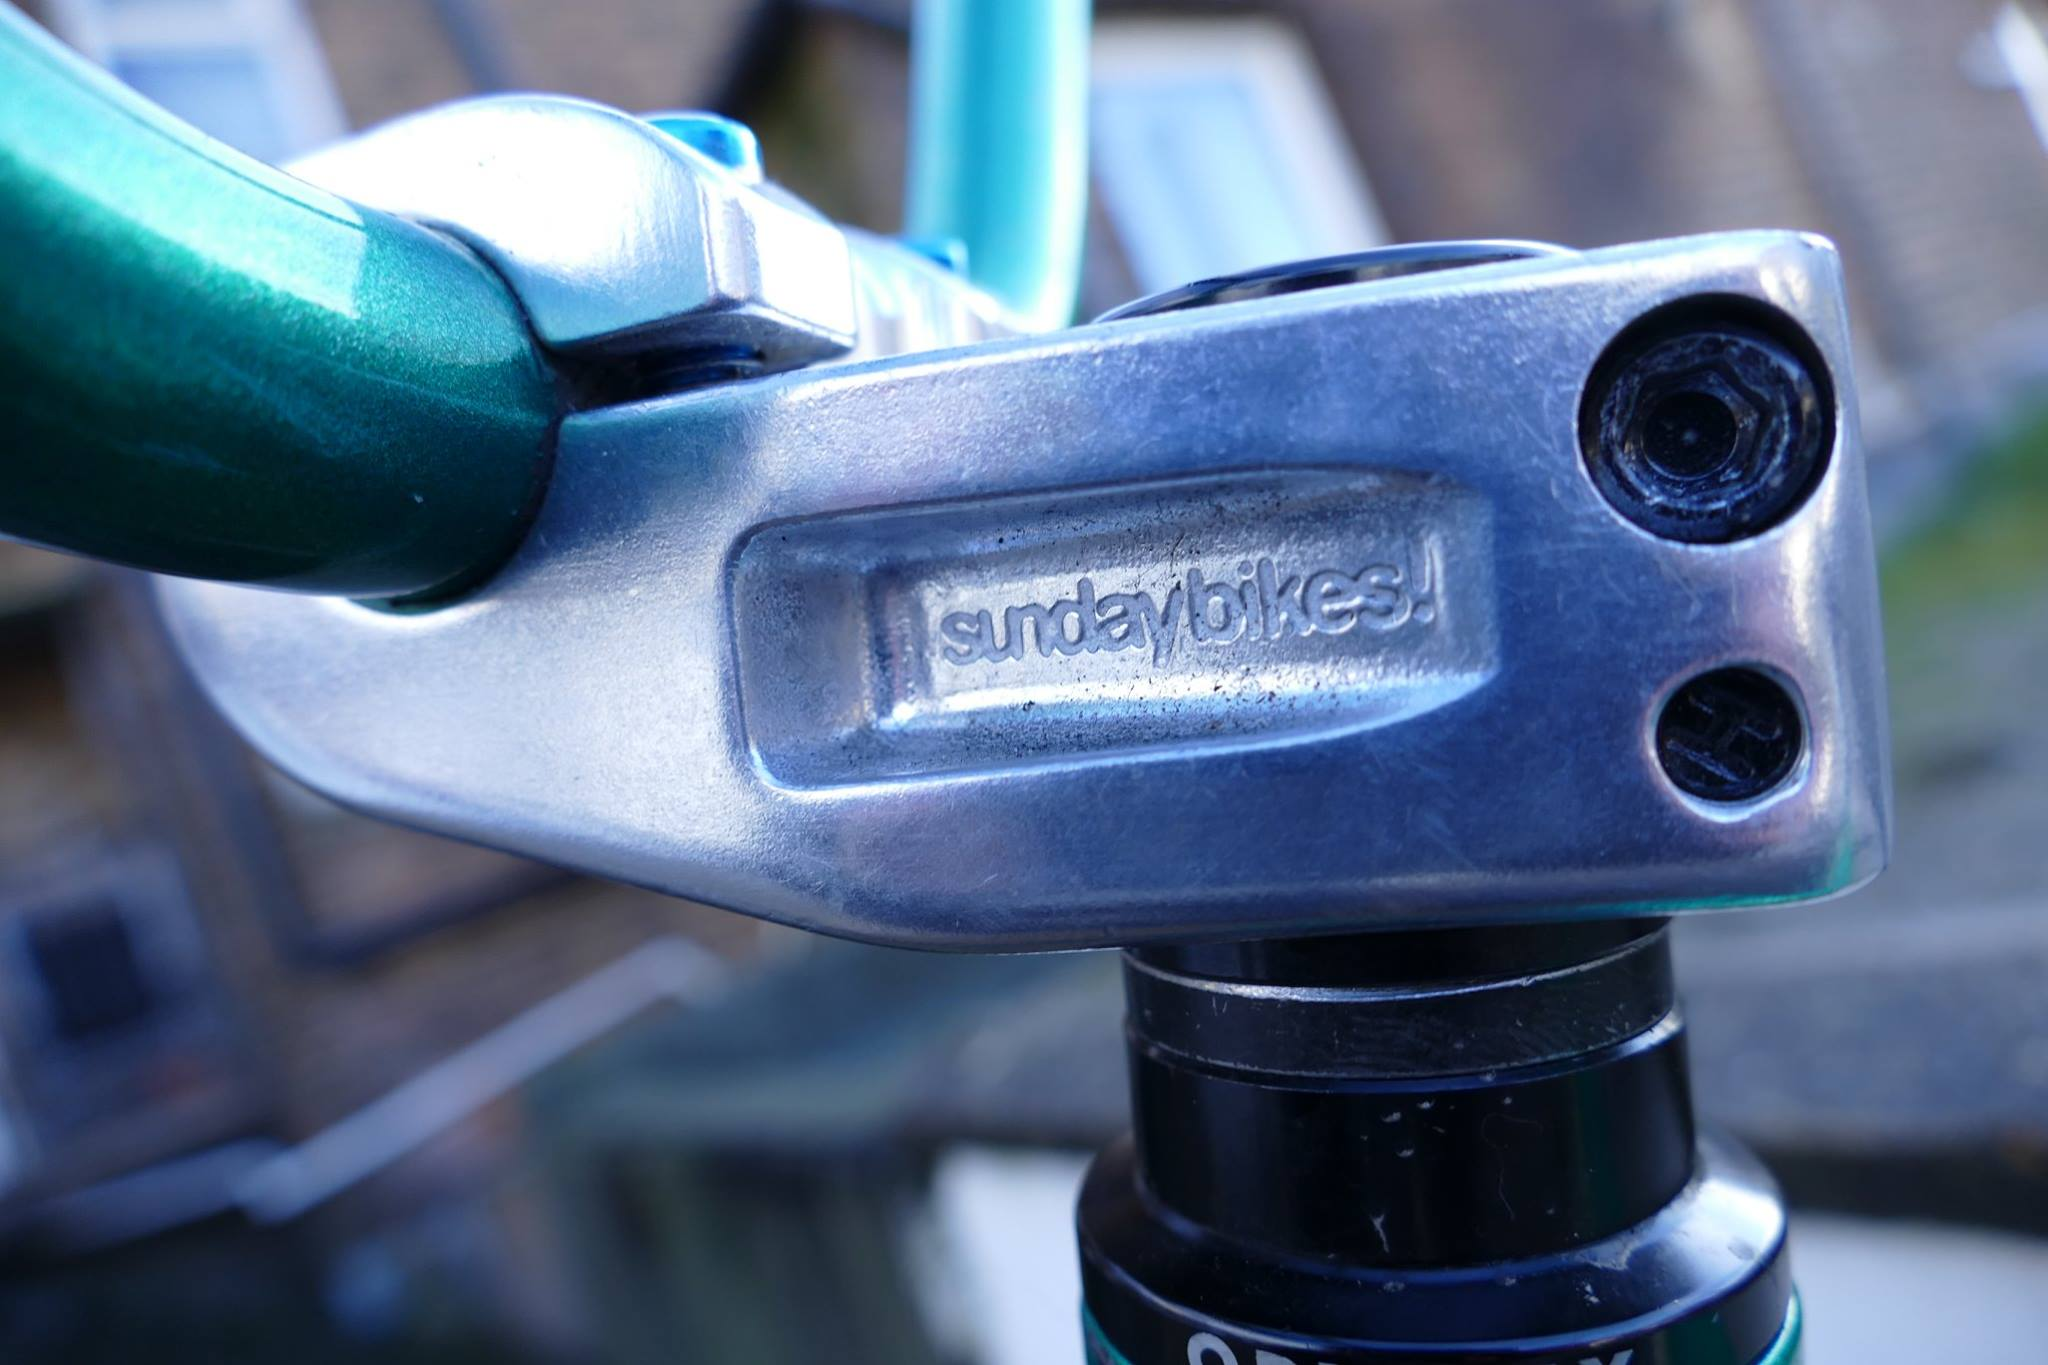 SUNDAY BIKES FREEZE TOP LOAD STEM